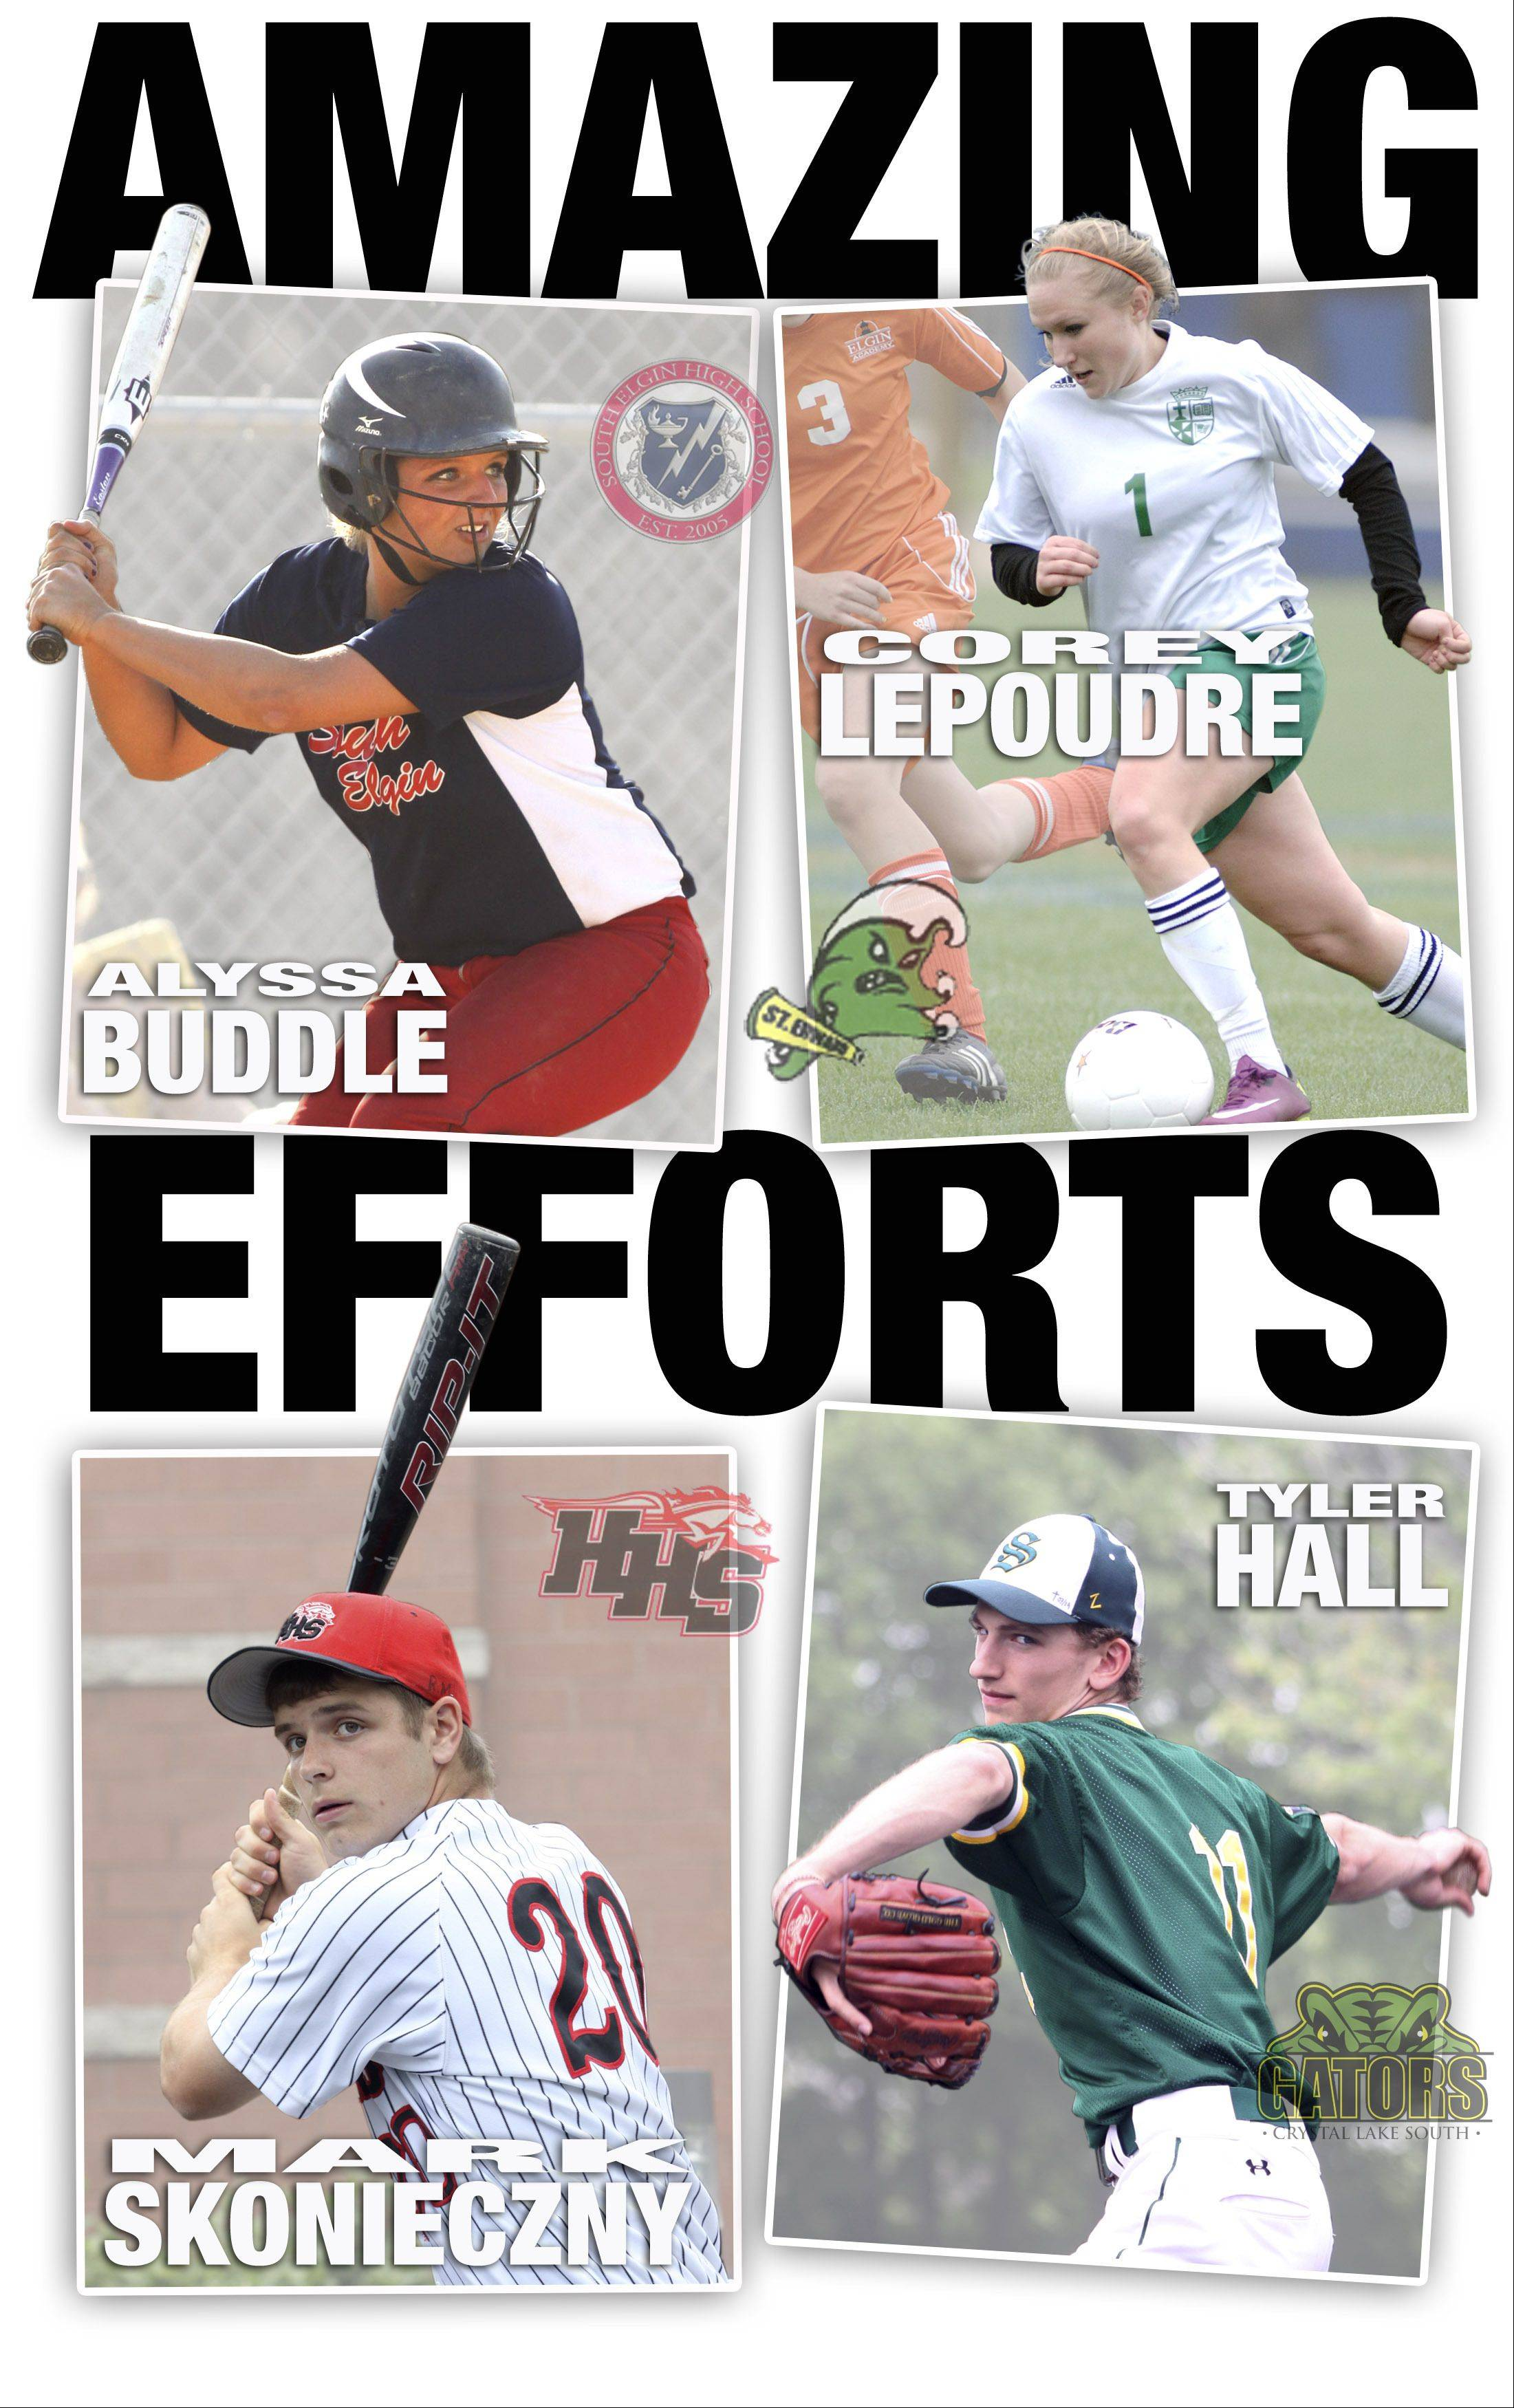 Fox Valley All-Area Team Captains for Spring 2013 are Alyssa Buddle, Corey LePoudre, Mark Skonieczny, and Tyler Hall